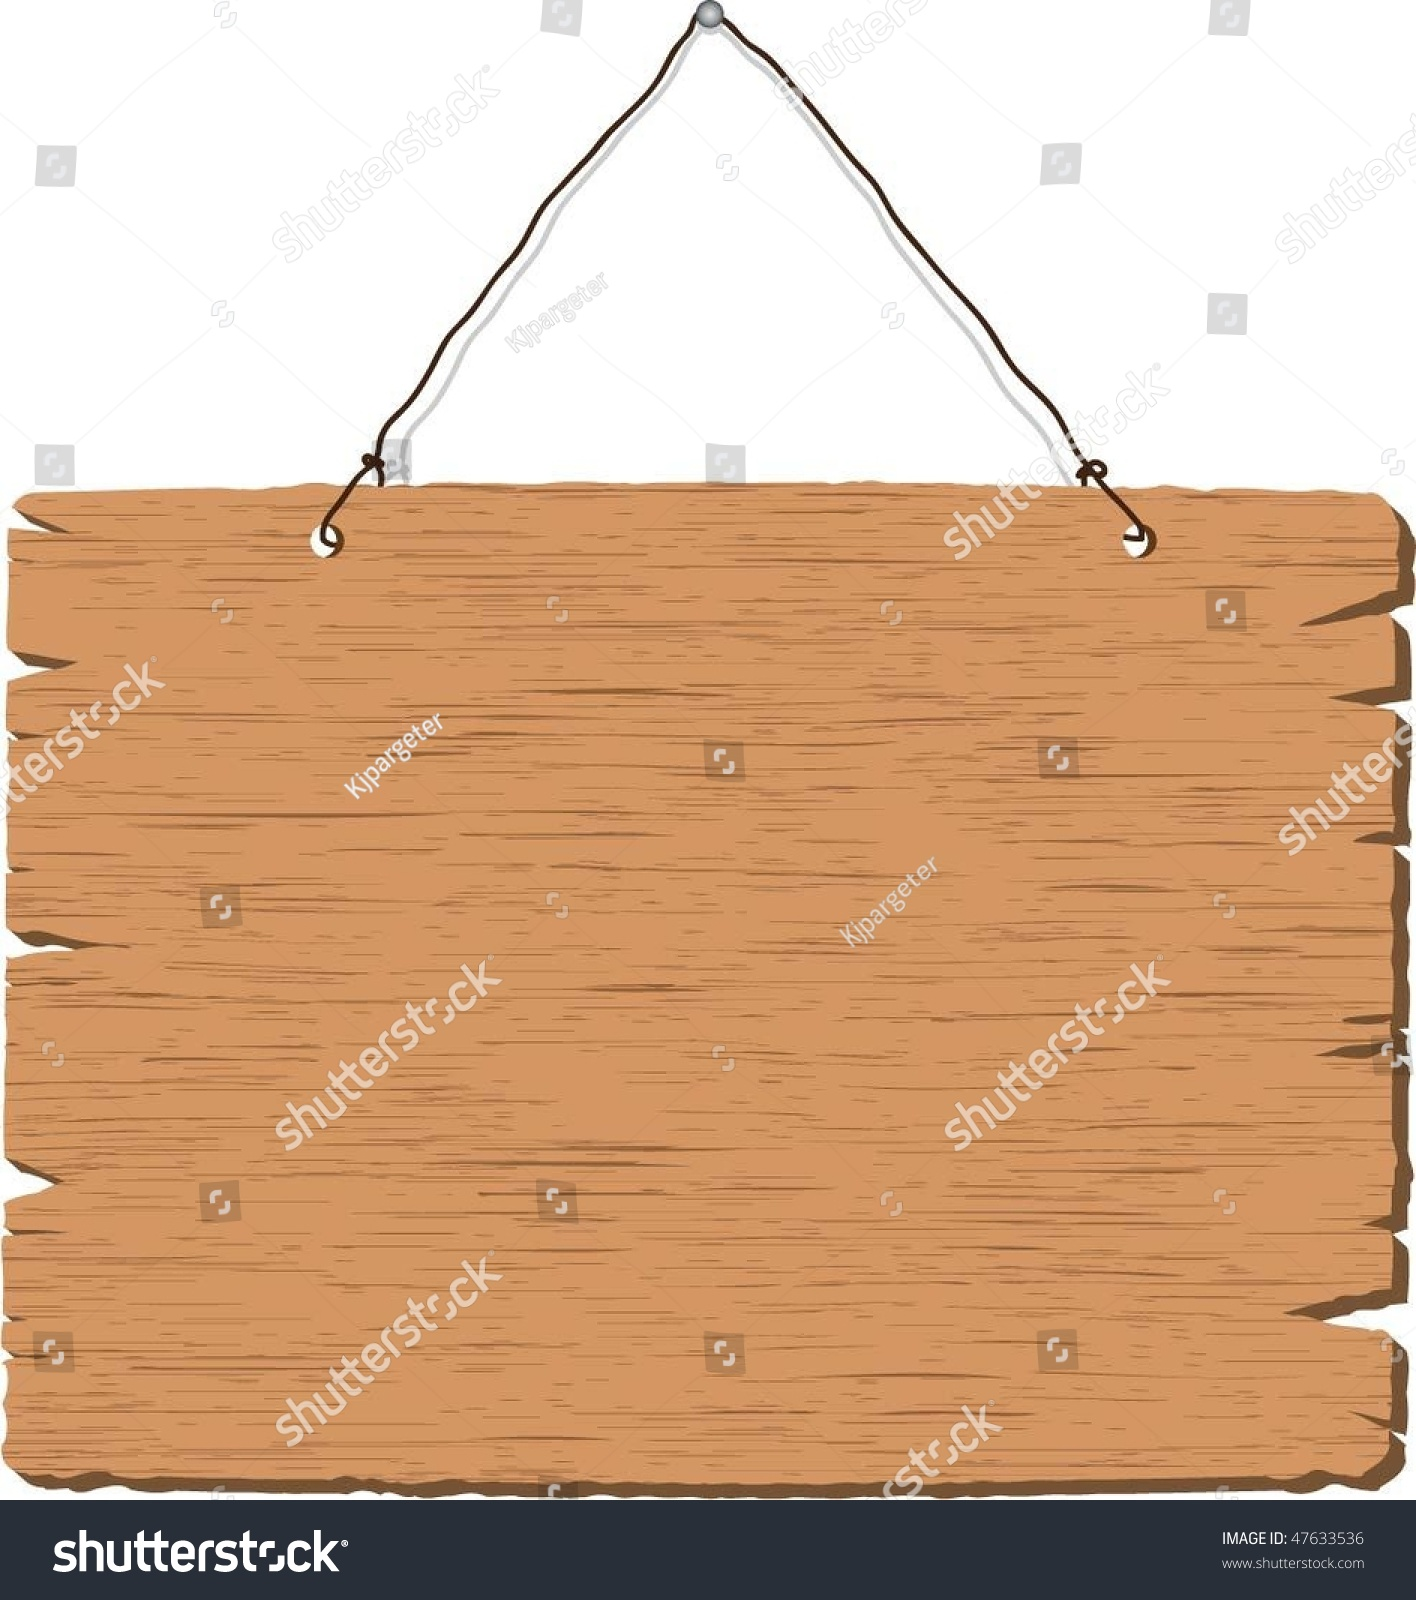 hanging wooden sign stock vector illustration 47633536